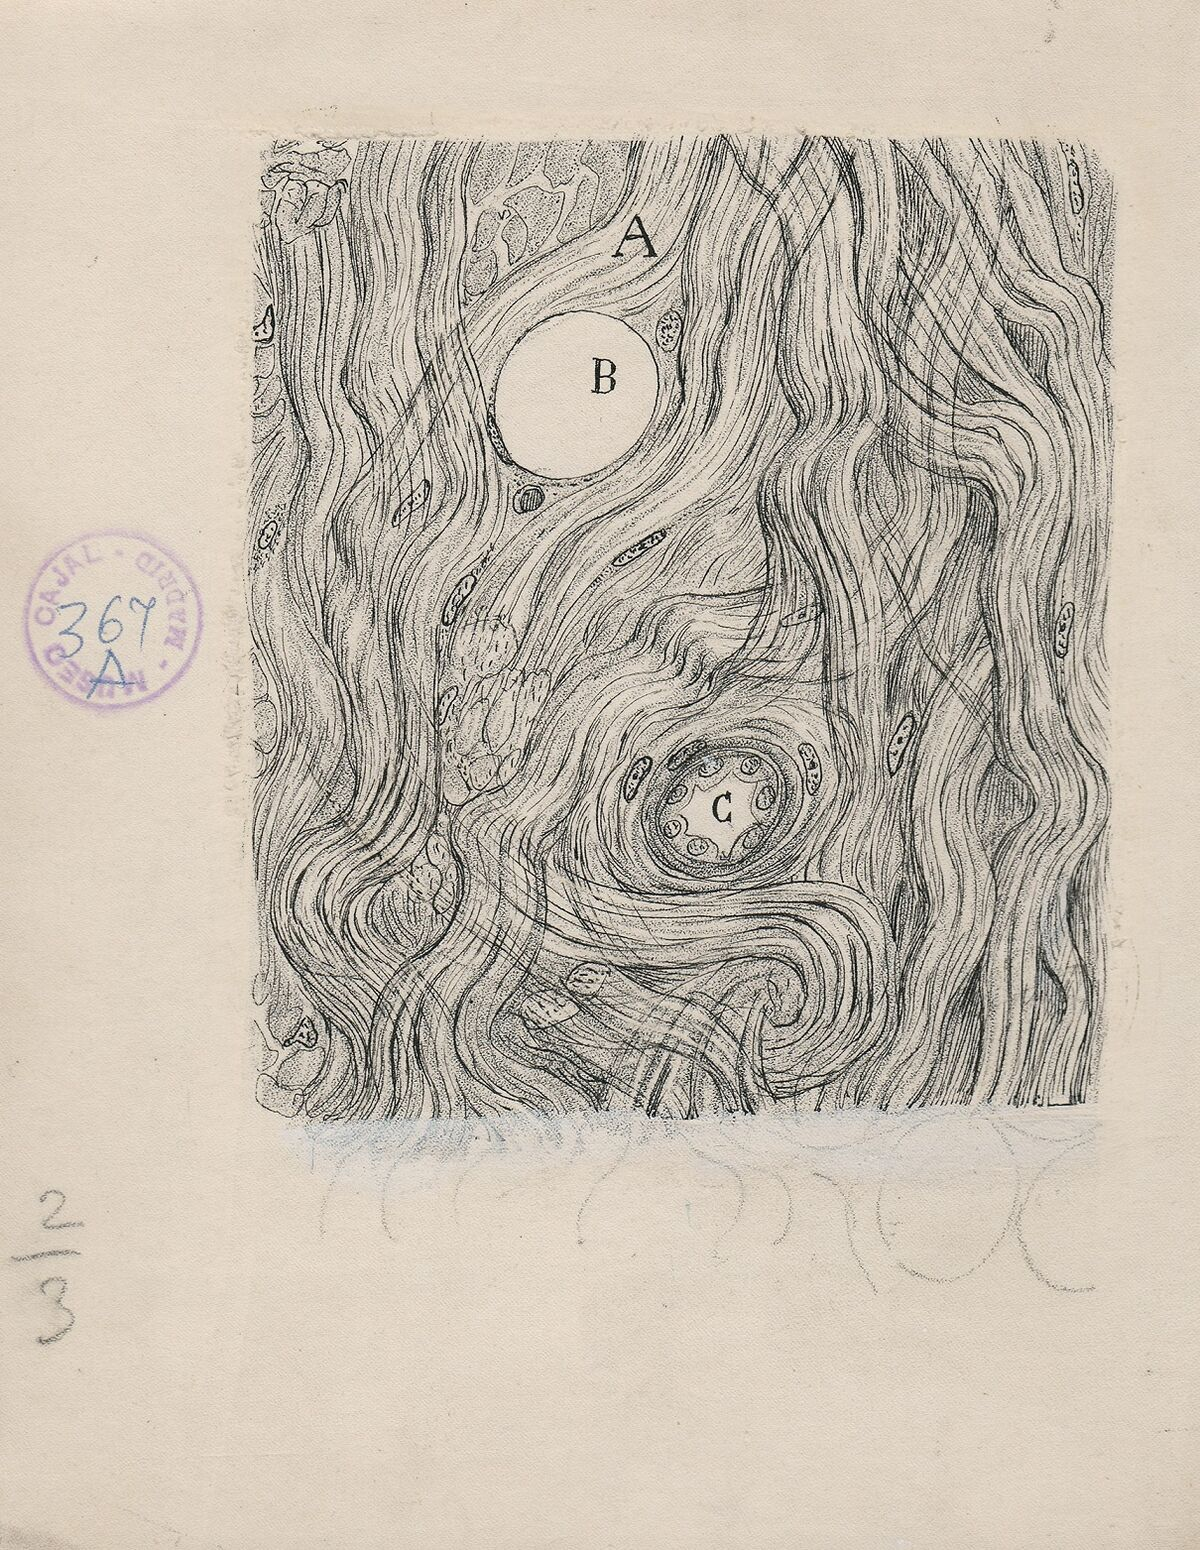 Santiago Ramón y Cajal, Tumor cells of the covering membranes of the brain, 1890. Courtesy of Cajal Institute (CSIC), Madrid.